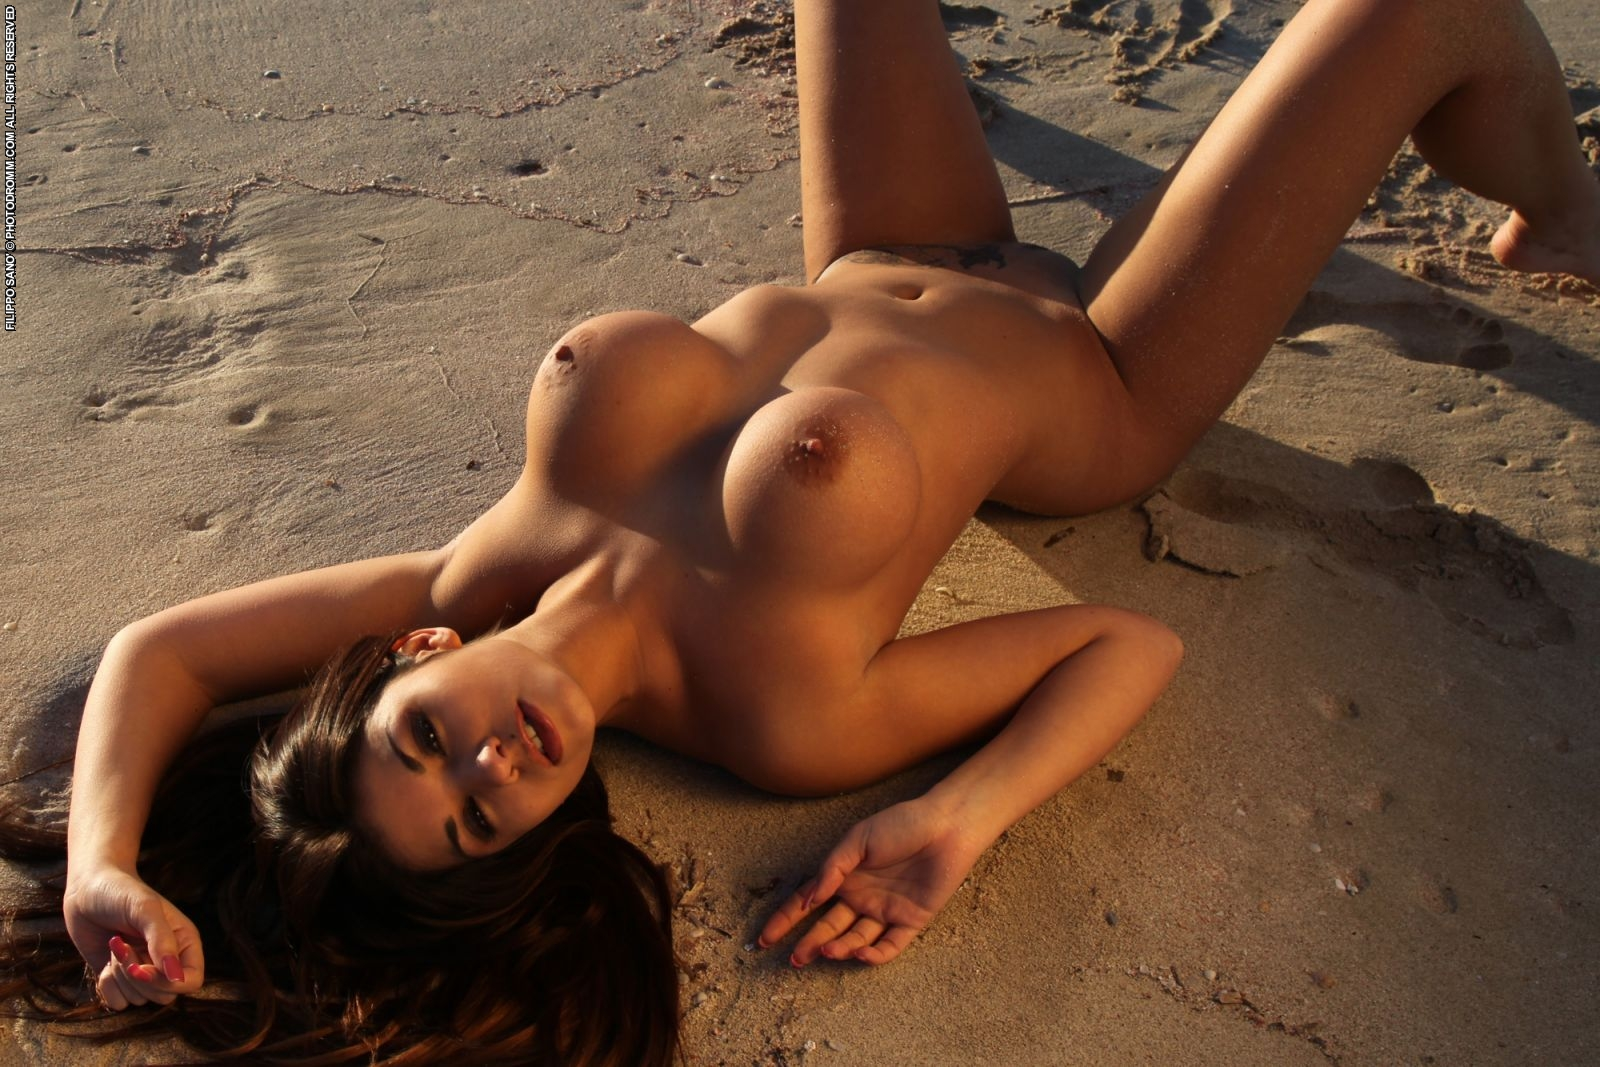 MARIBEL: Hot naked girl models on nude beach